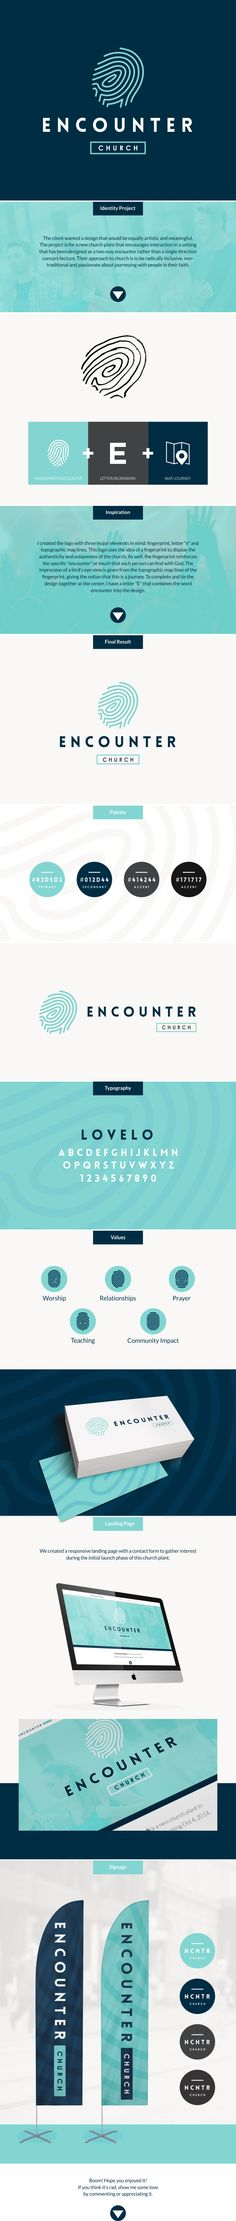 https://www.behance.net/gallery/19226519/Encounter-Church-Church-Plant-Logo-Landing-Page